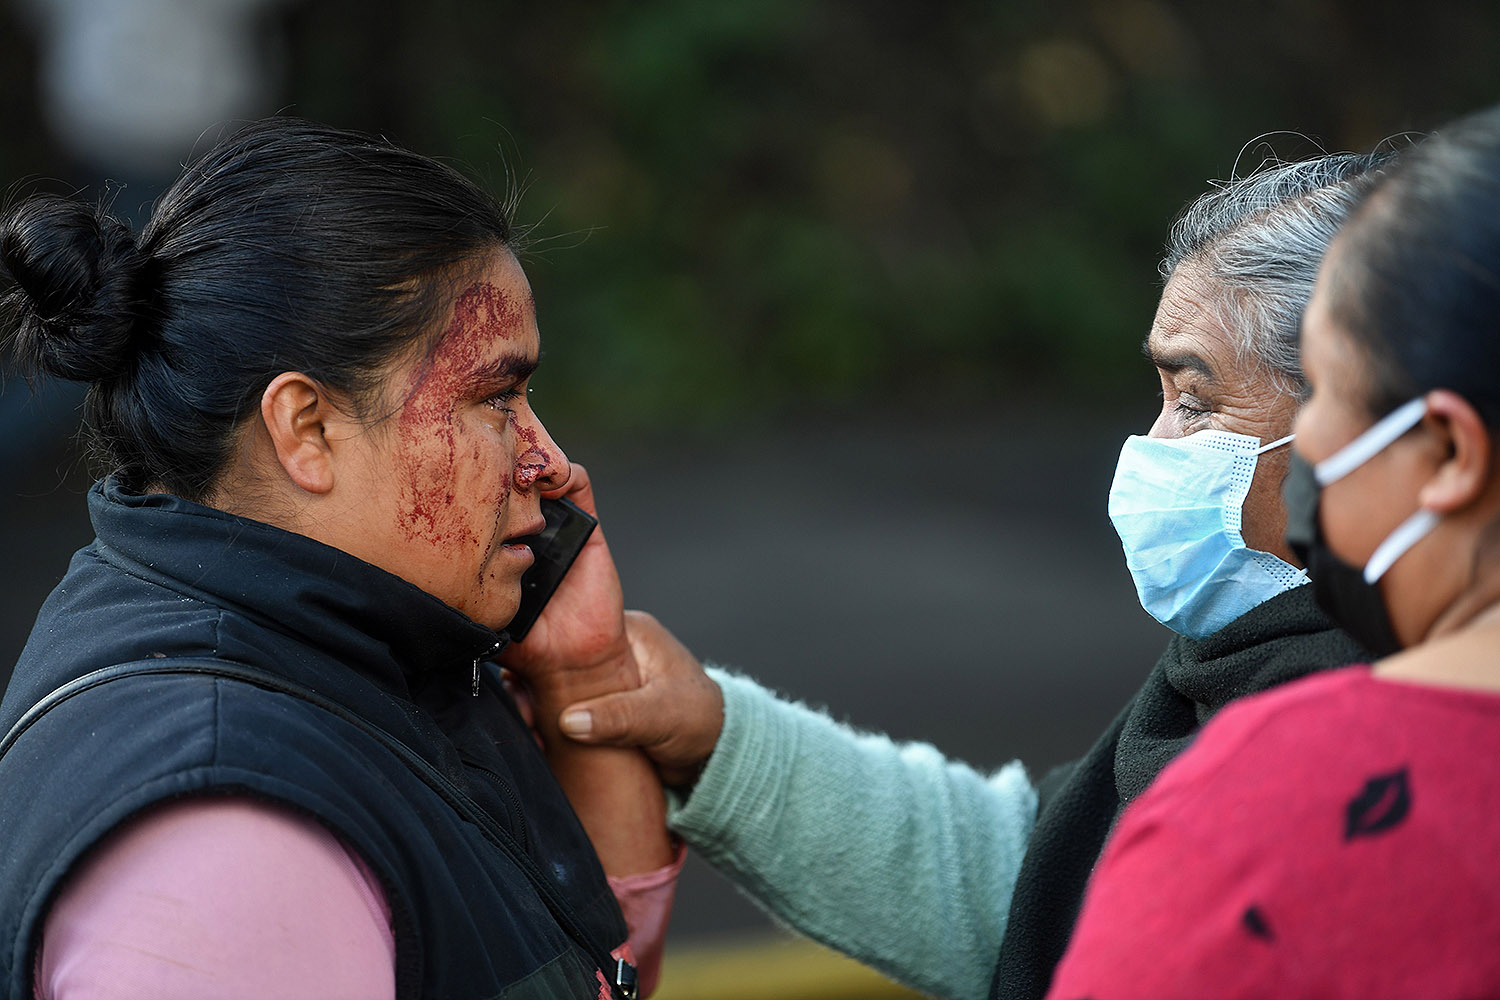 A relative of a passerby who was killed in an attack speaks on the phone at the crime scene in Mexico City on June 26. Mexico City's Public Security Secretary Omar García Harfuch, who was targeted, was wounded in the attack. PEDRO PARDO/AFP via Getty Images